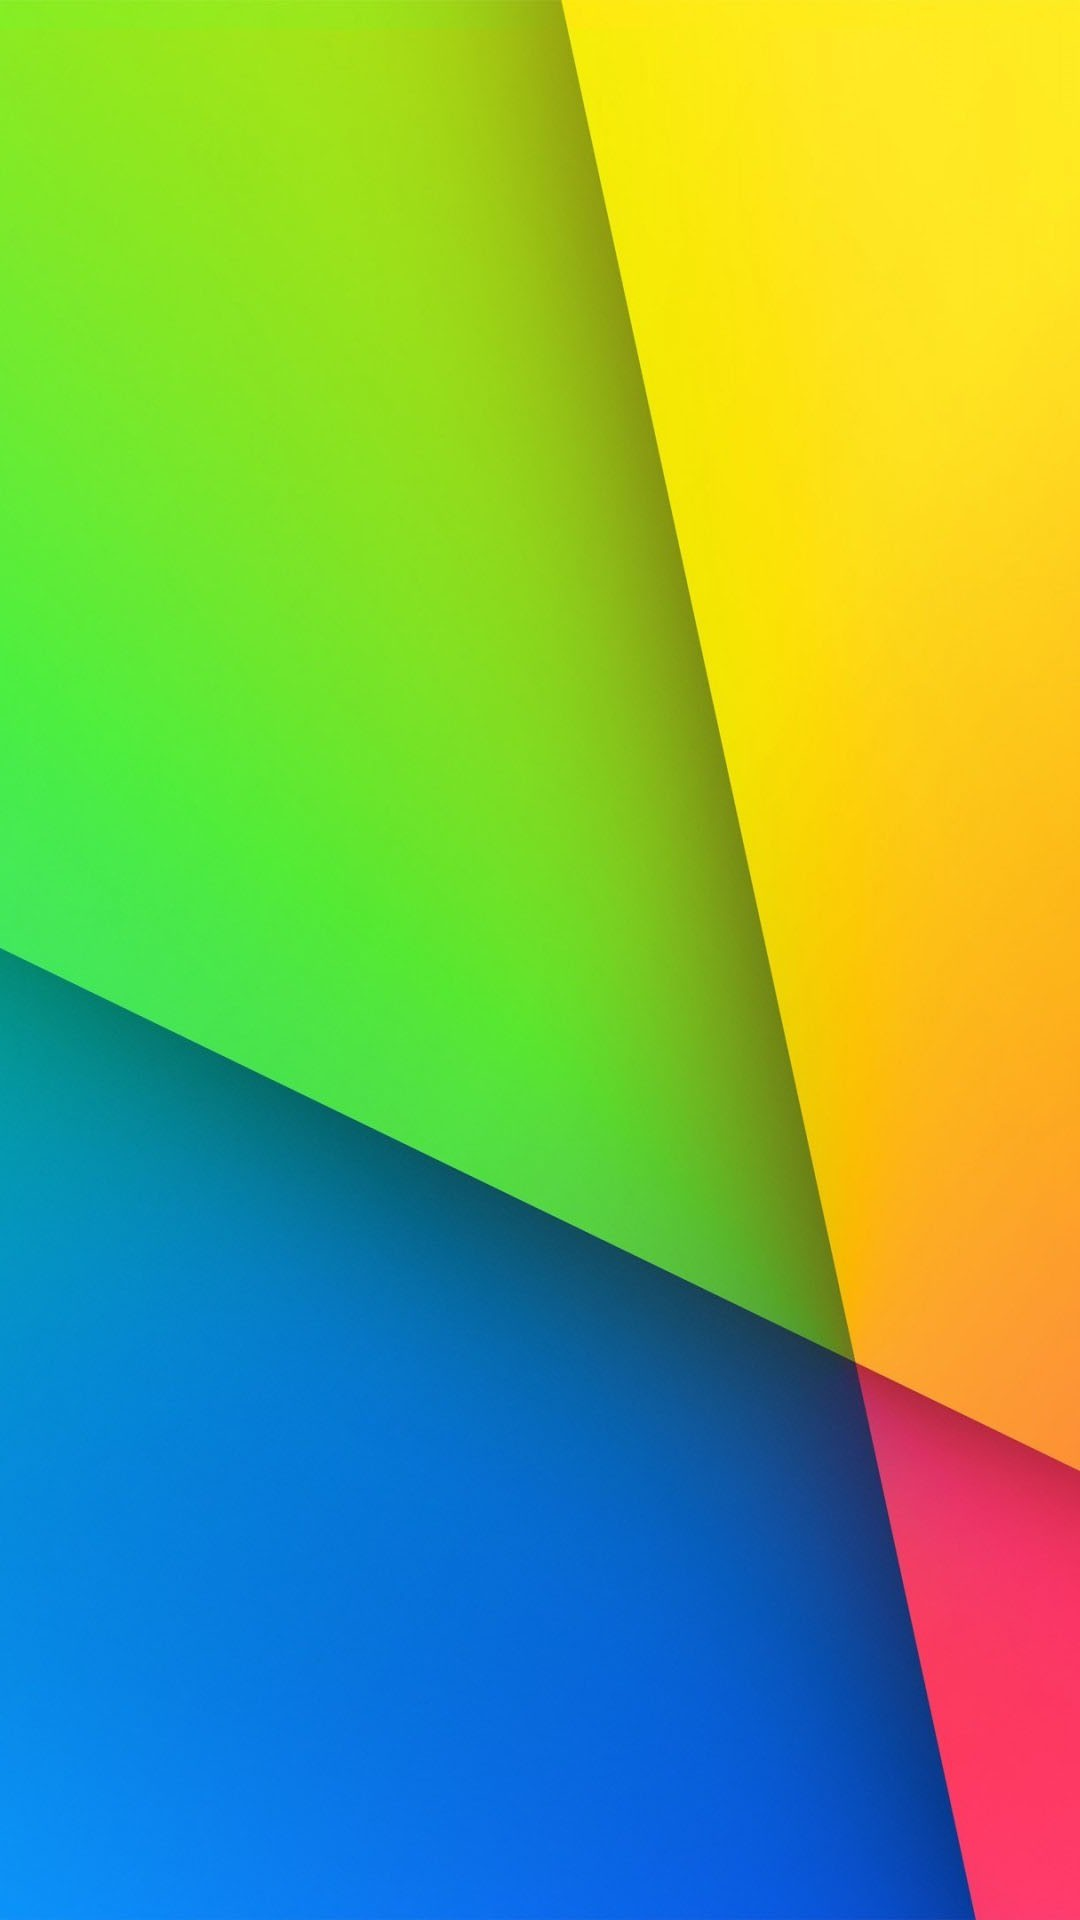 colorful yellow blue pink green background 1080×1920